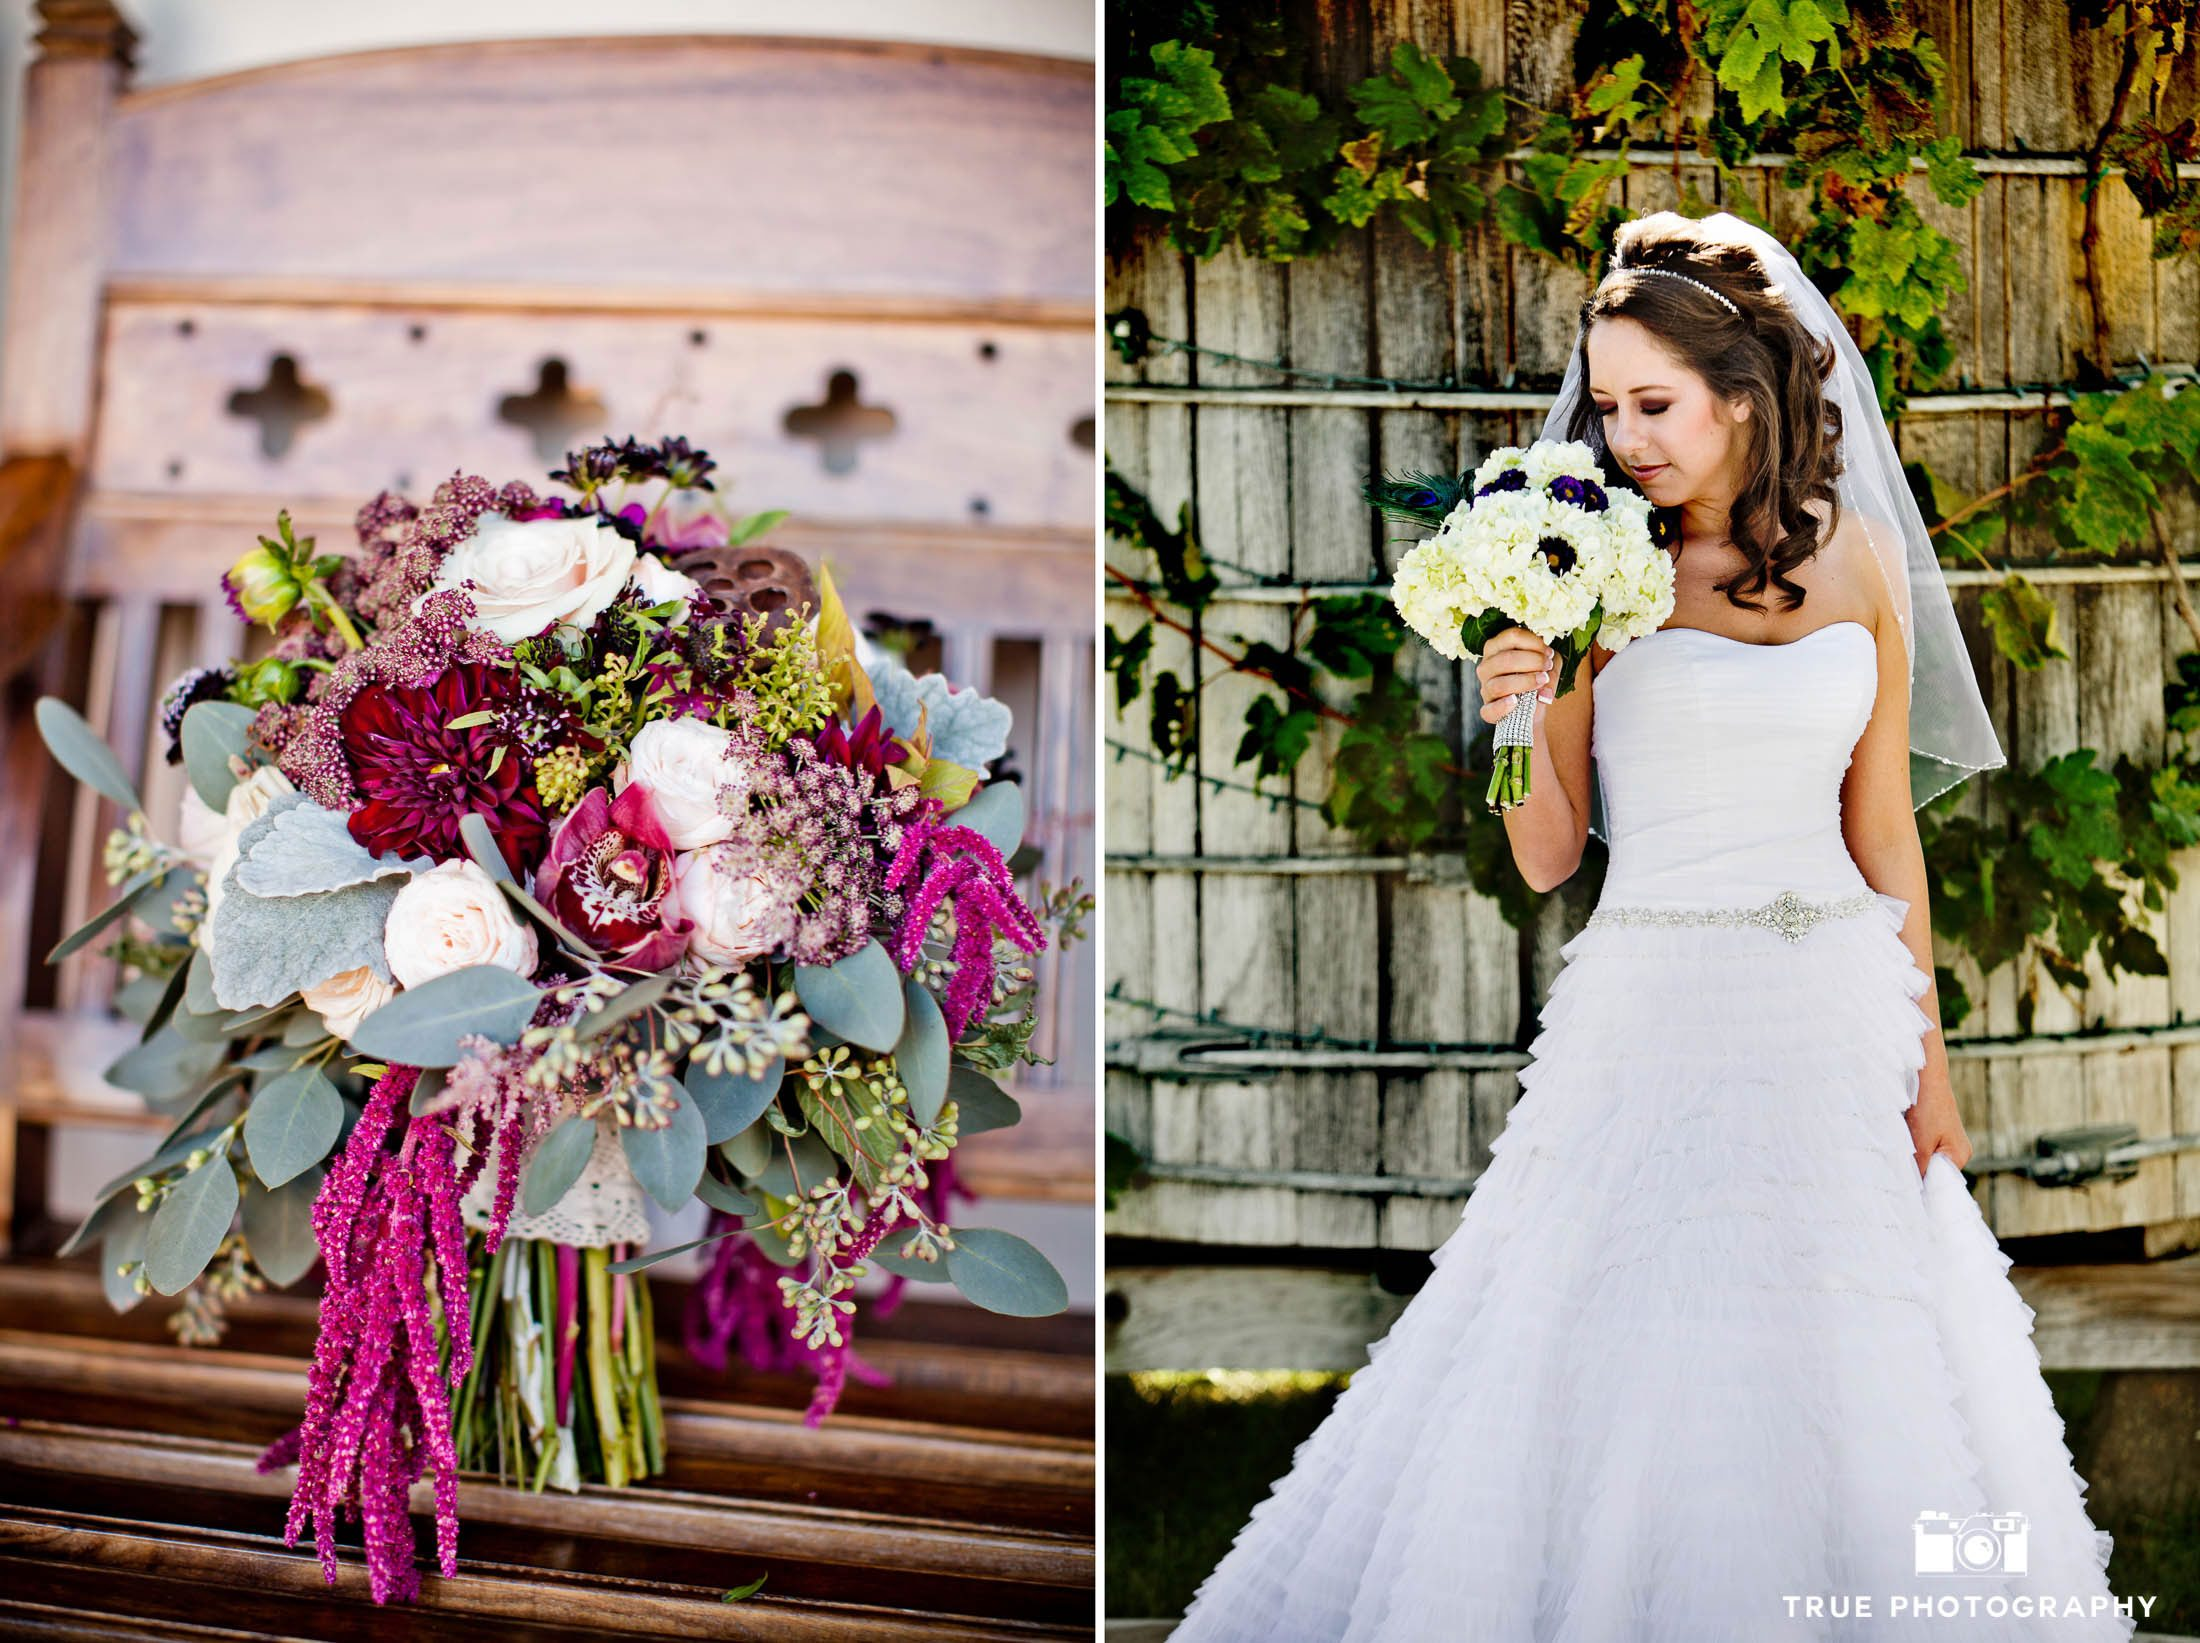 Collaged image of rustic flowers with bride